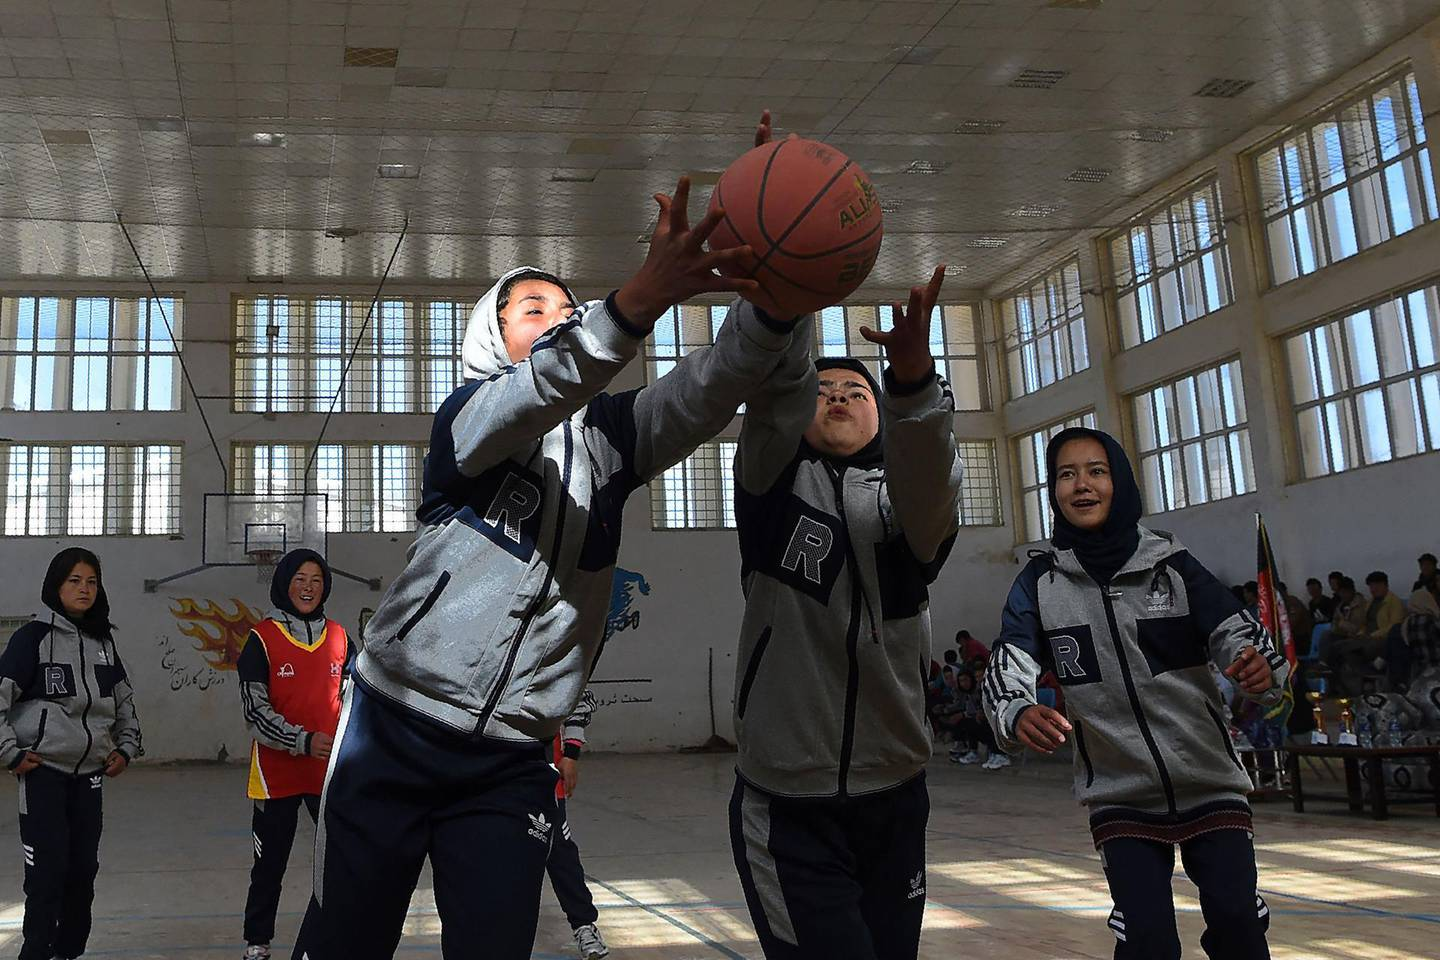 Hazara female basketball players take part in an event on International Women's Day in Bamiyan Province on March 8, 2021. / AFP / WAKIL KOHSAR